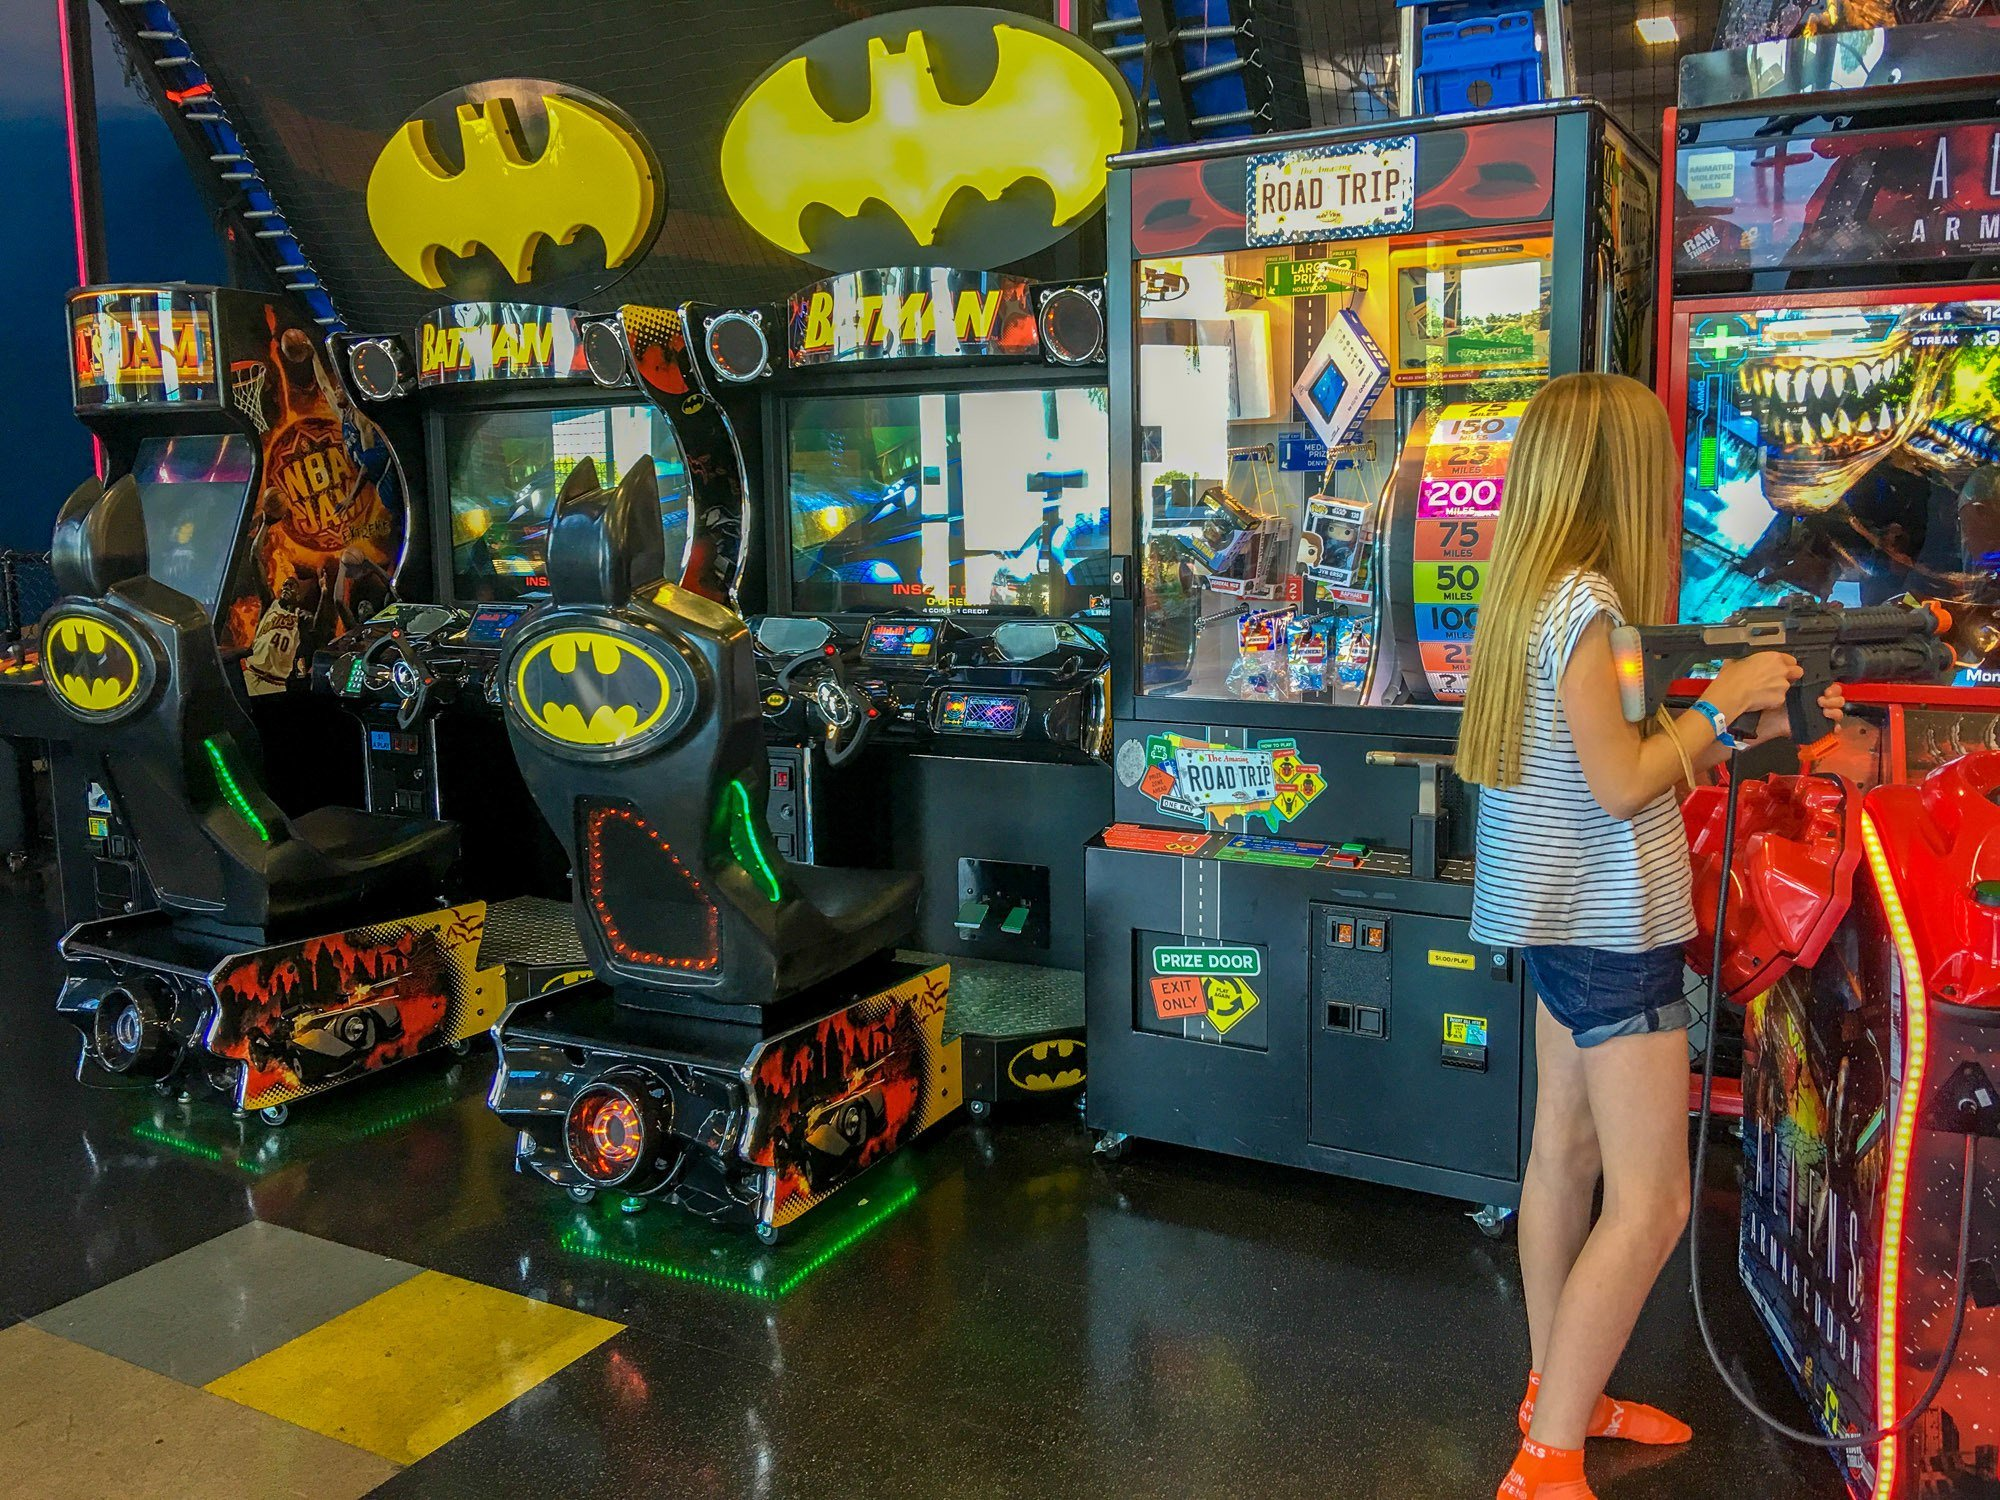 Sky Zone San Diego has video games in addition to being a trampoline park.